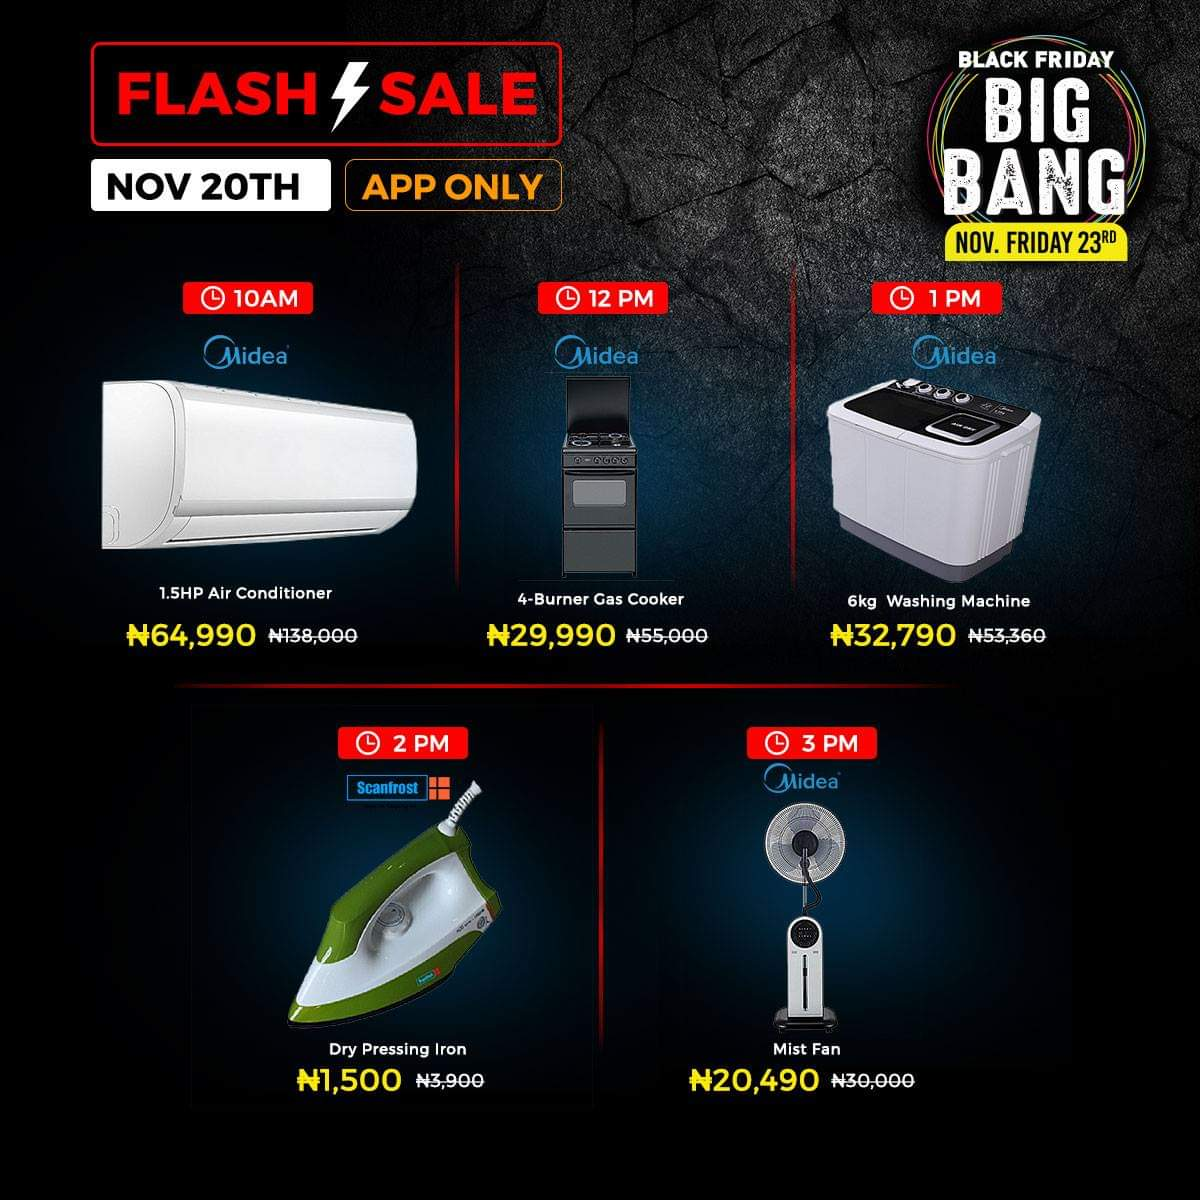 Jumia Black Friday Flash Sales